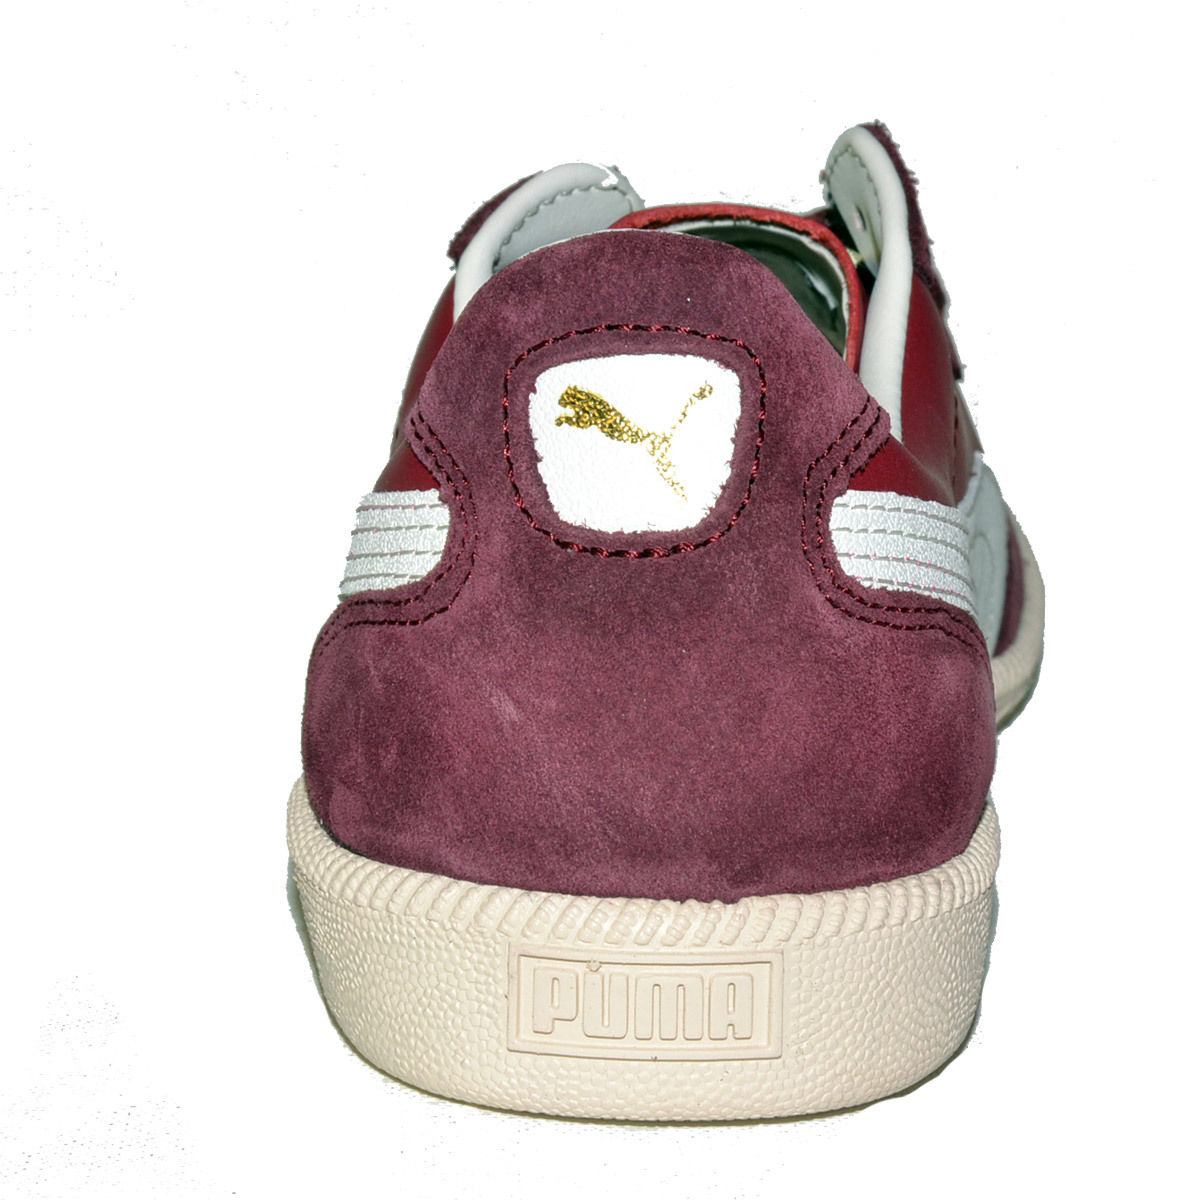 Details about PUMA Super Liga OG Shoes Retro Style Trainers Sneakers